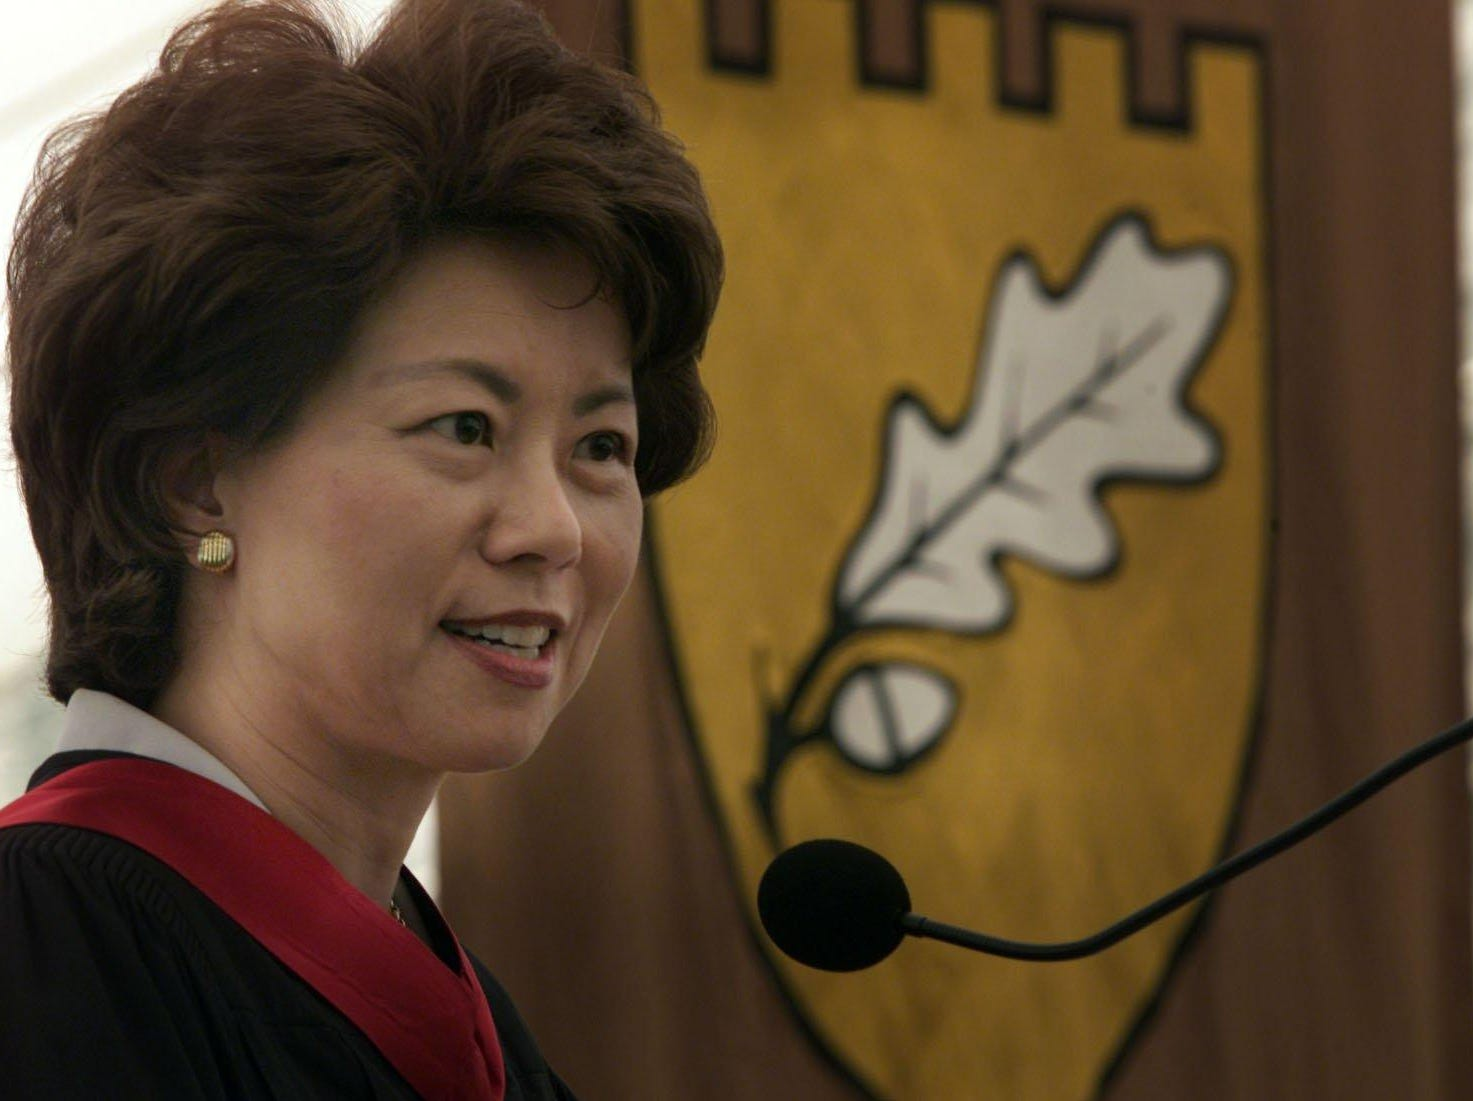 U.S. Sec. of Labor Elaine Chao addresses Vanderbilt University's Owen School of Business graduating class of 2001 during their commencement ceremony.